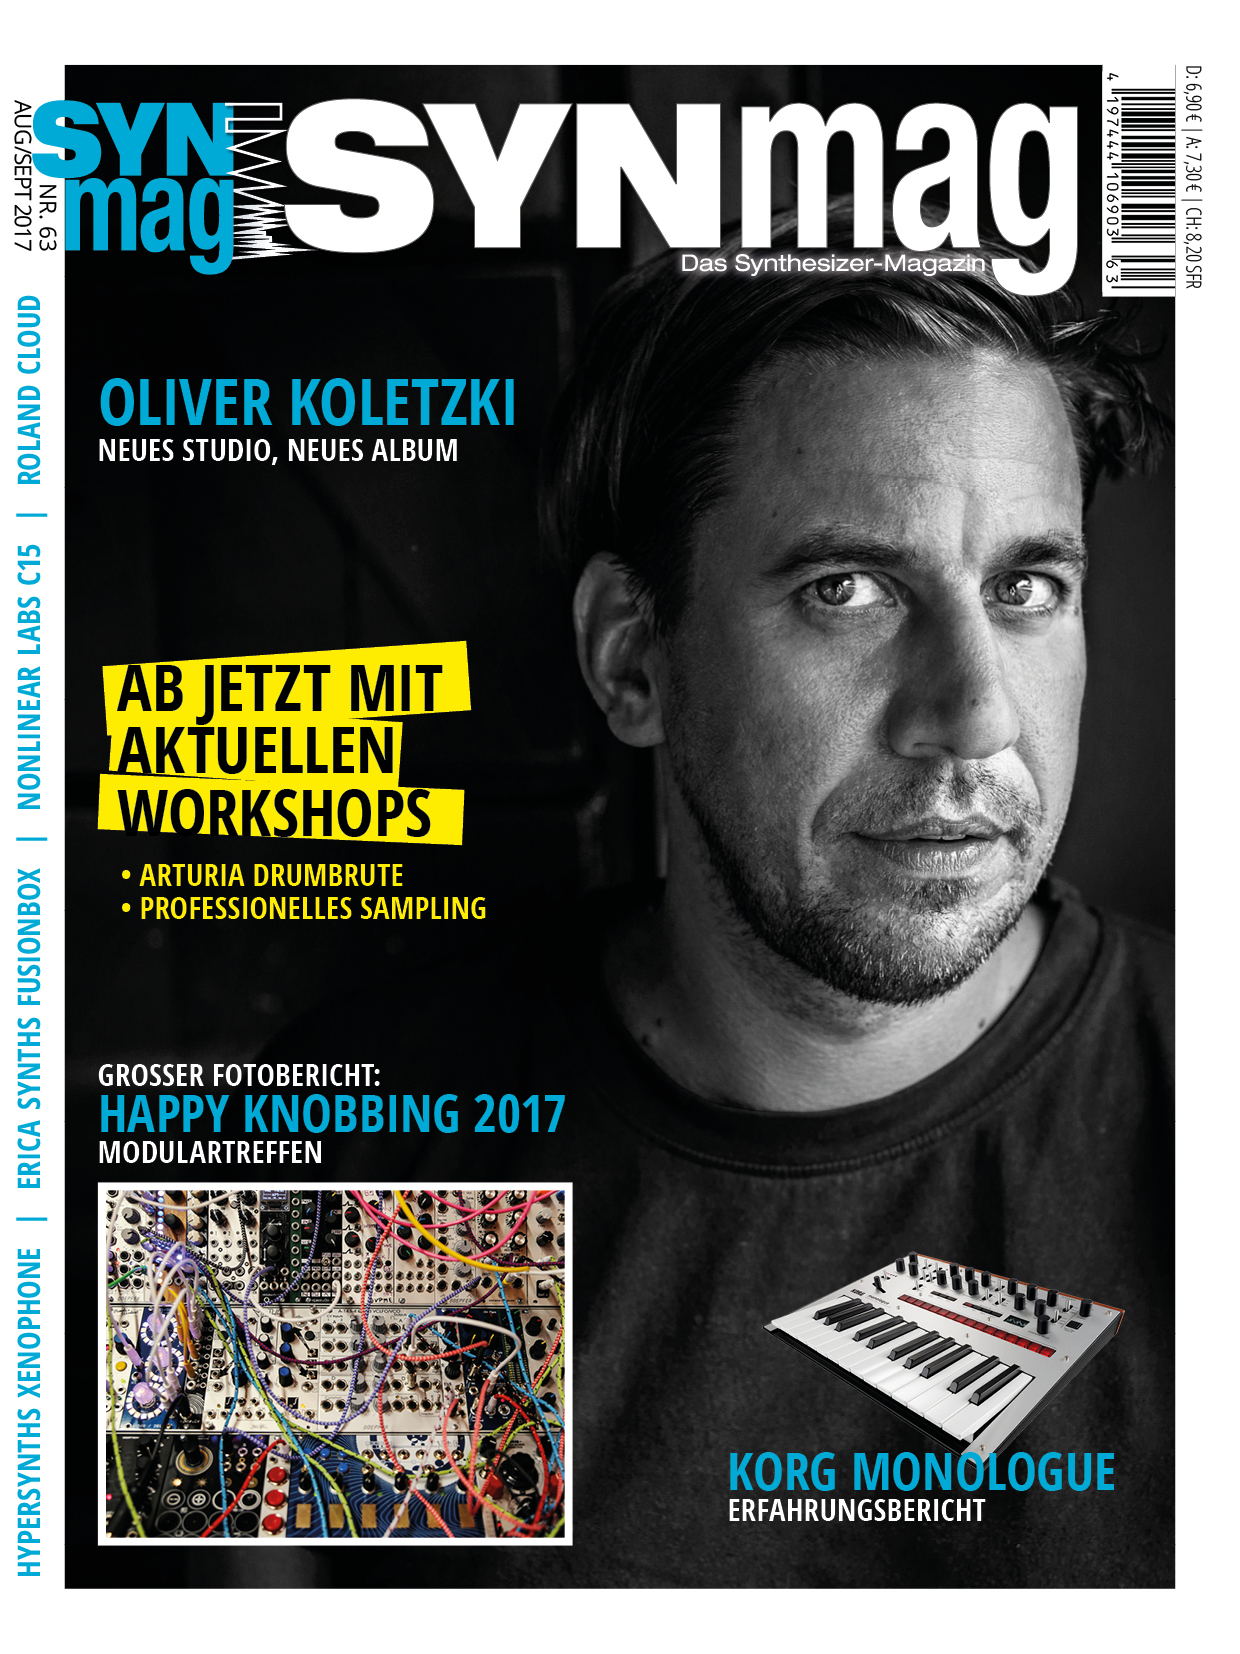 Syn;ag 63 - Das Synthesizer Magazin